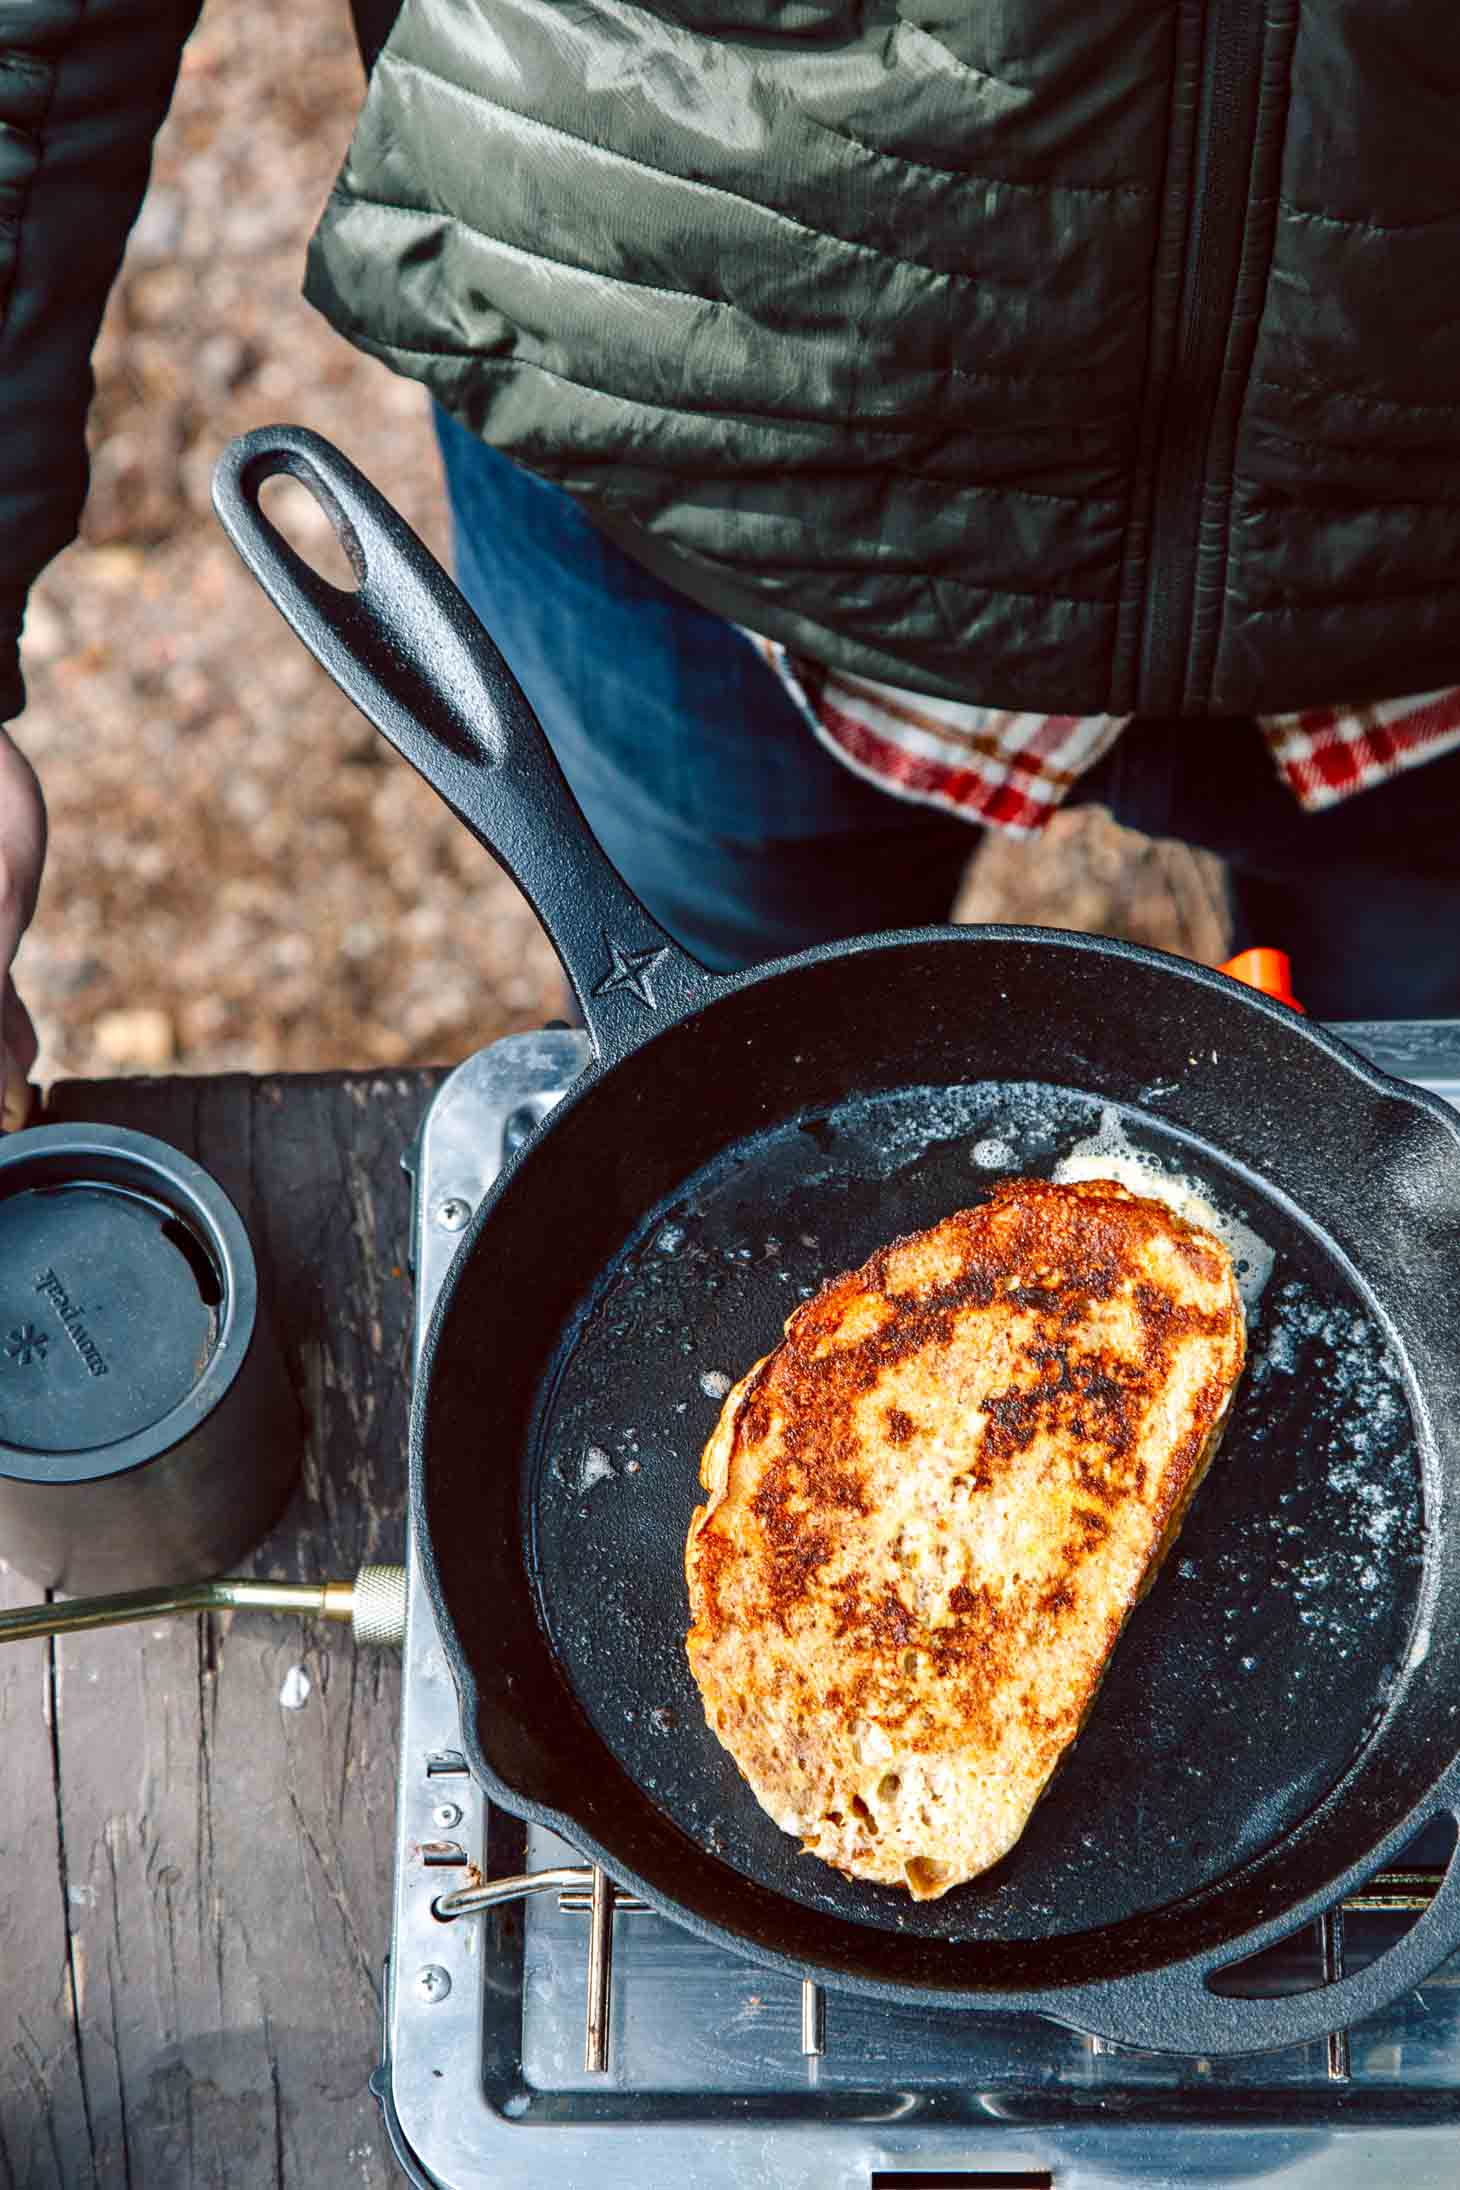 French Toast in a cast iron skillet on a camping stove.